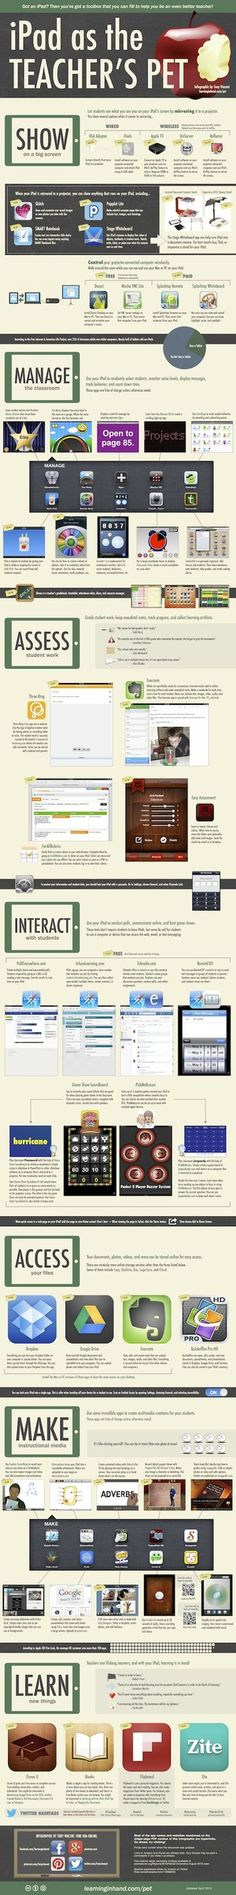 Use this infographic to remind yourself and your students of the many possibilities and potential of tablets and apps.